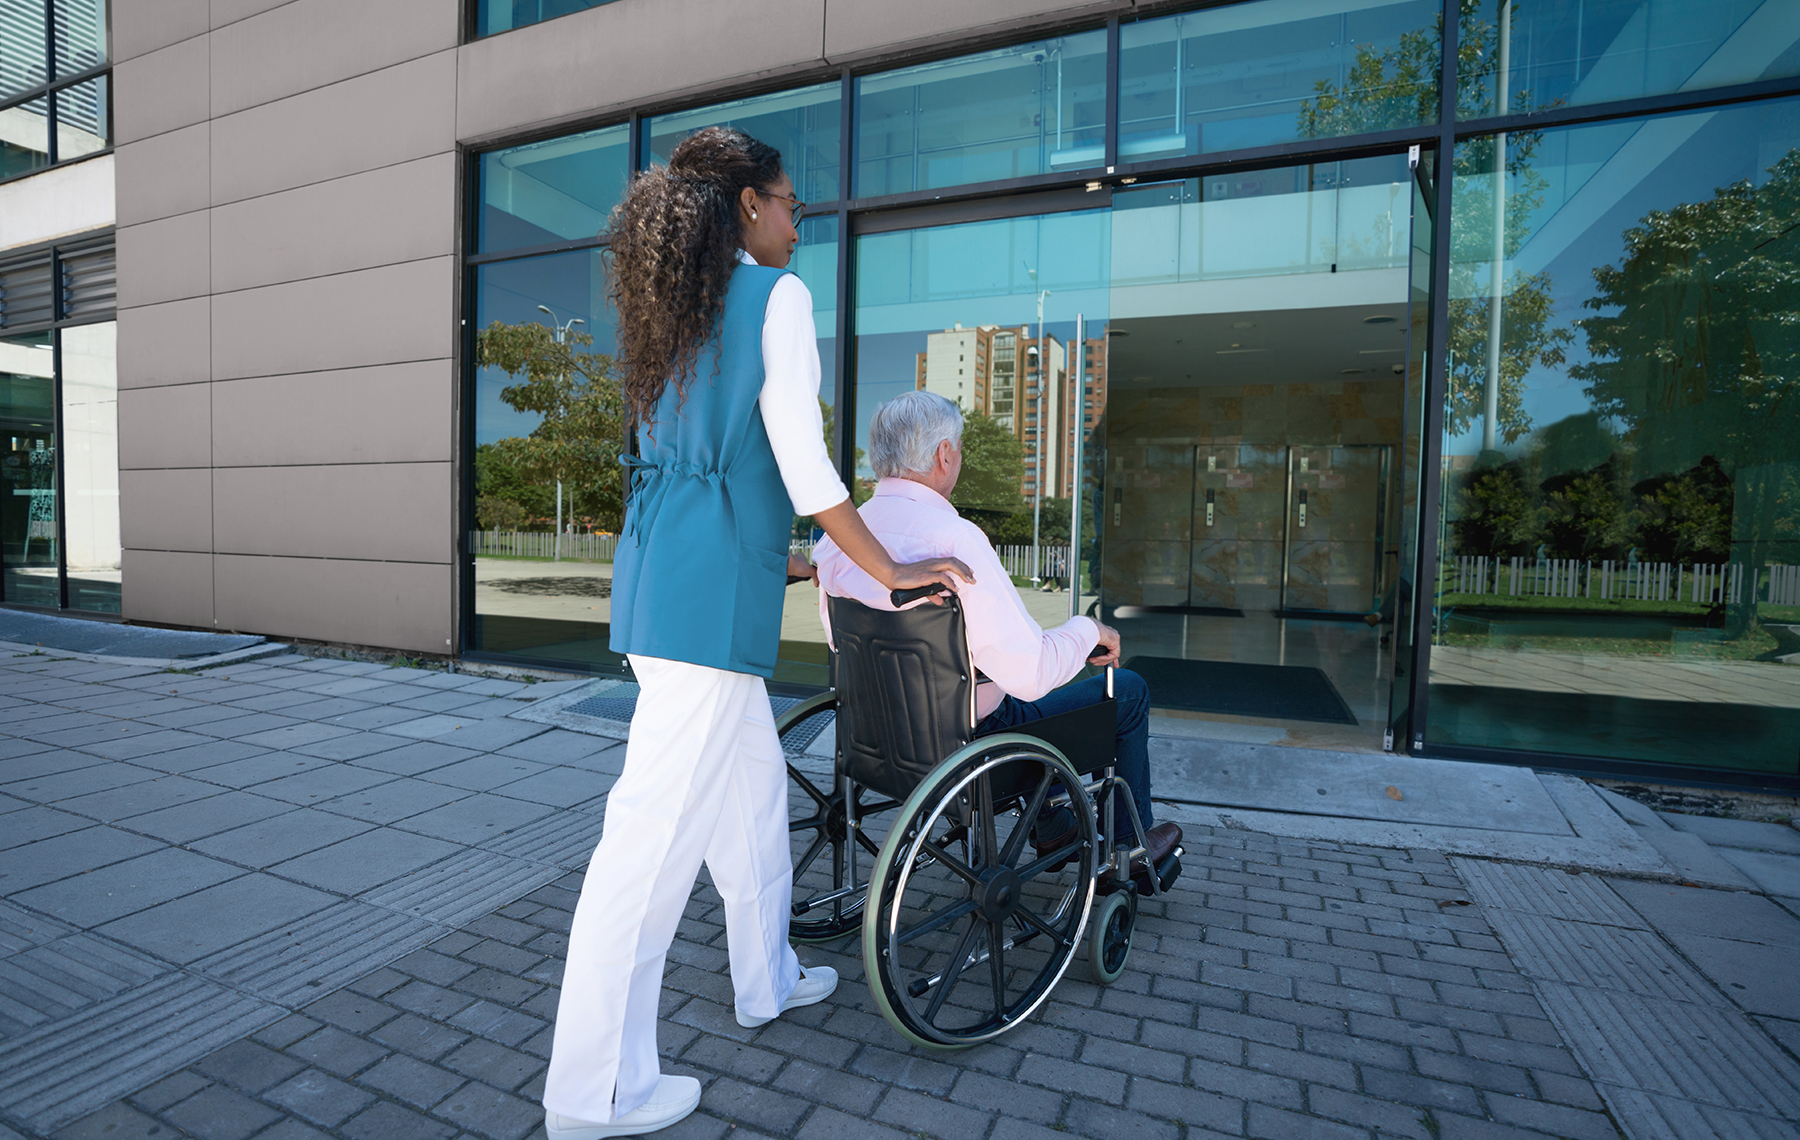 Nurse Pushing a Senior in a Wheel Chair